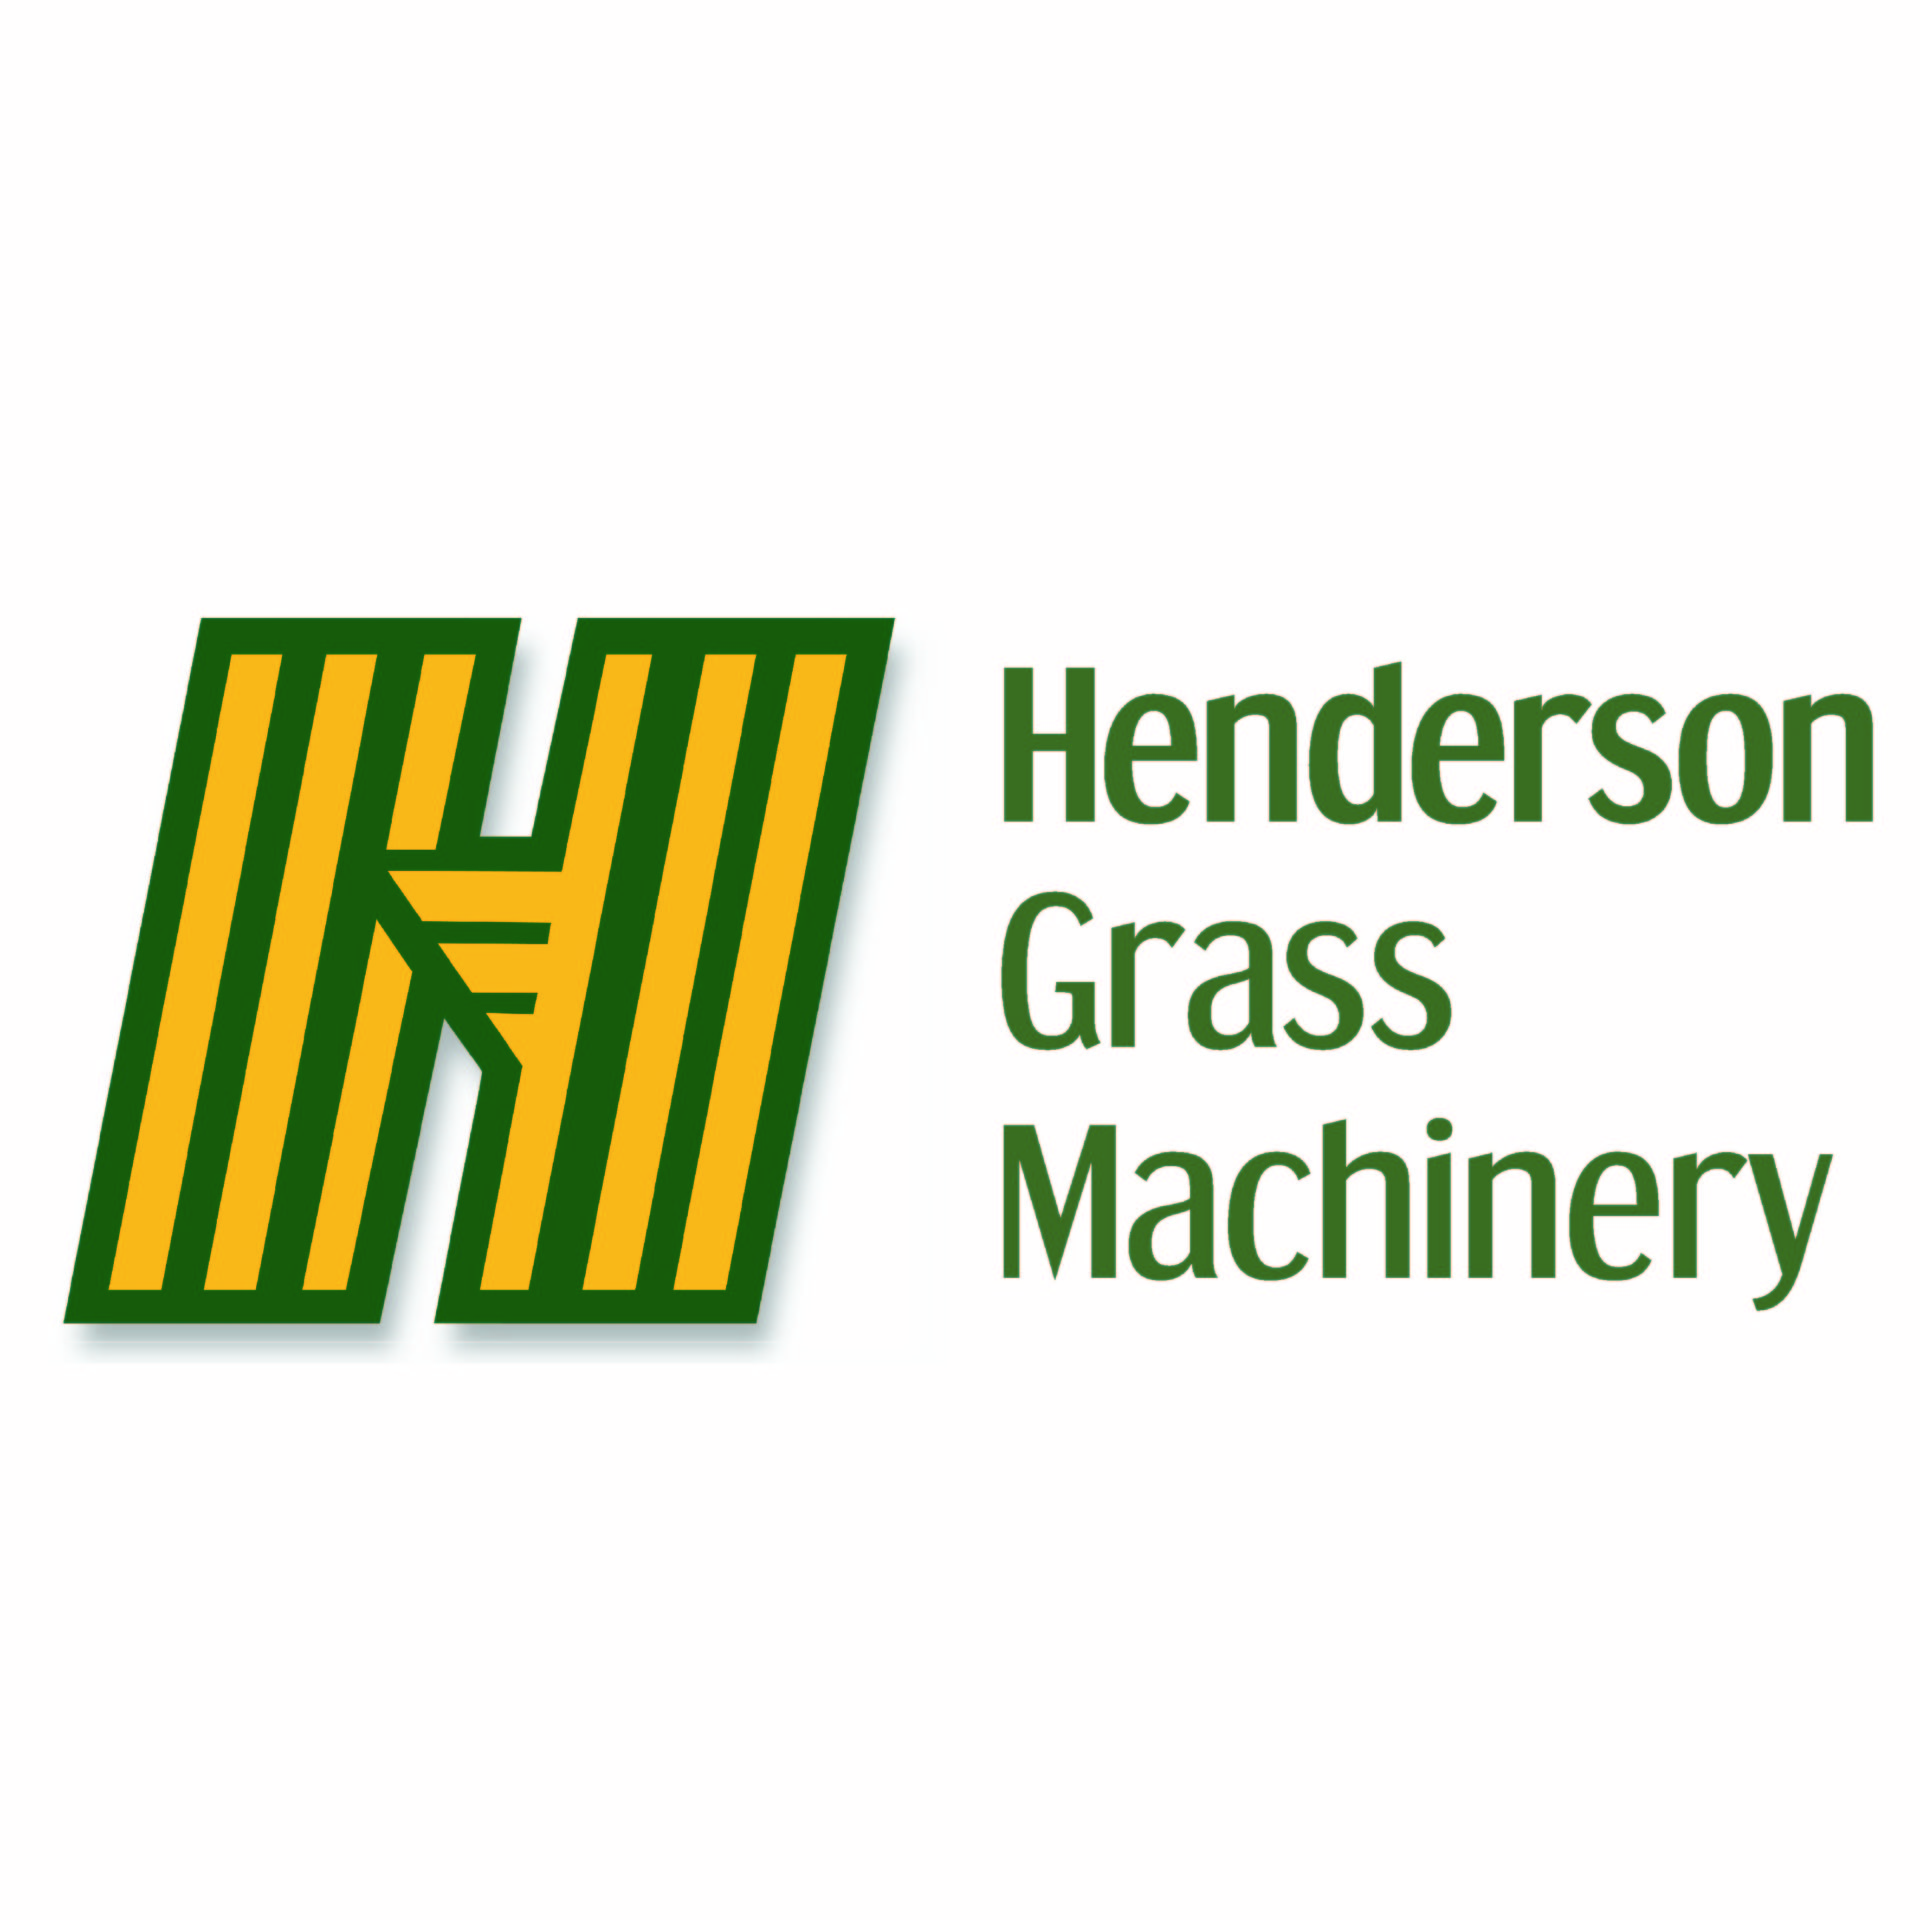 Henderson Grass Machinery logo